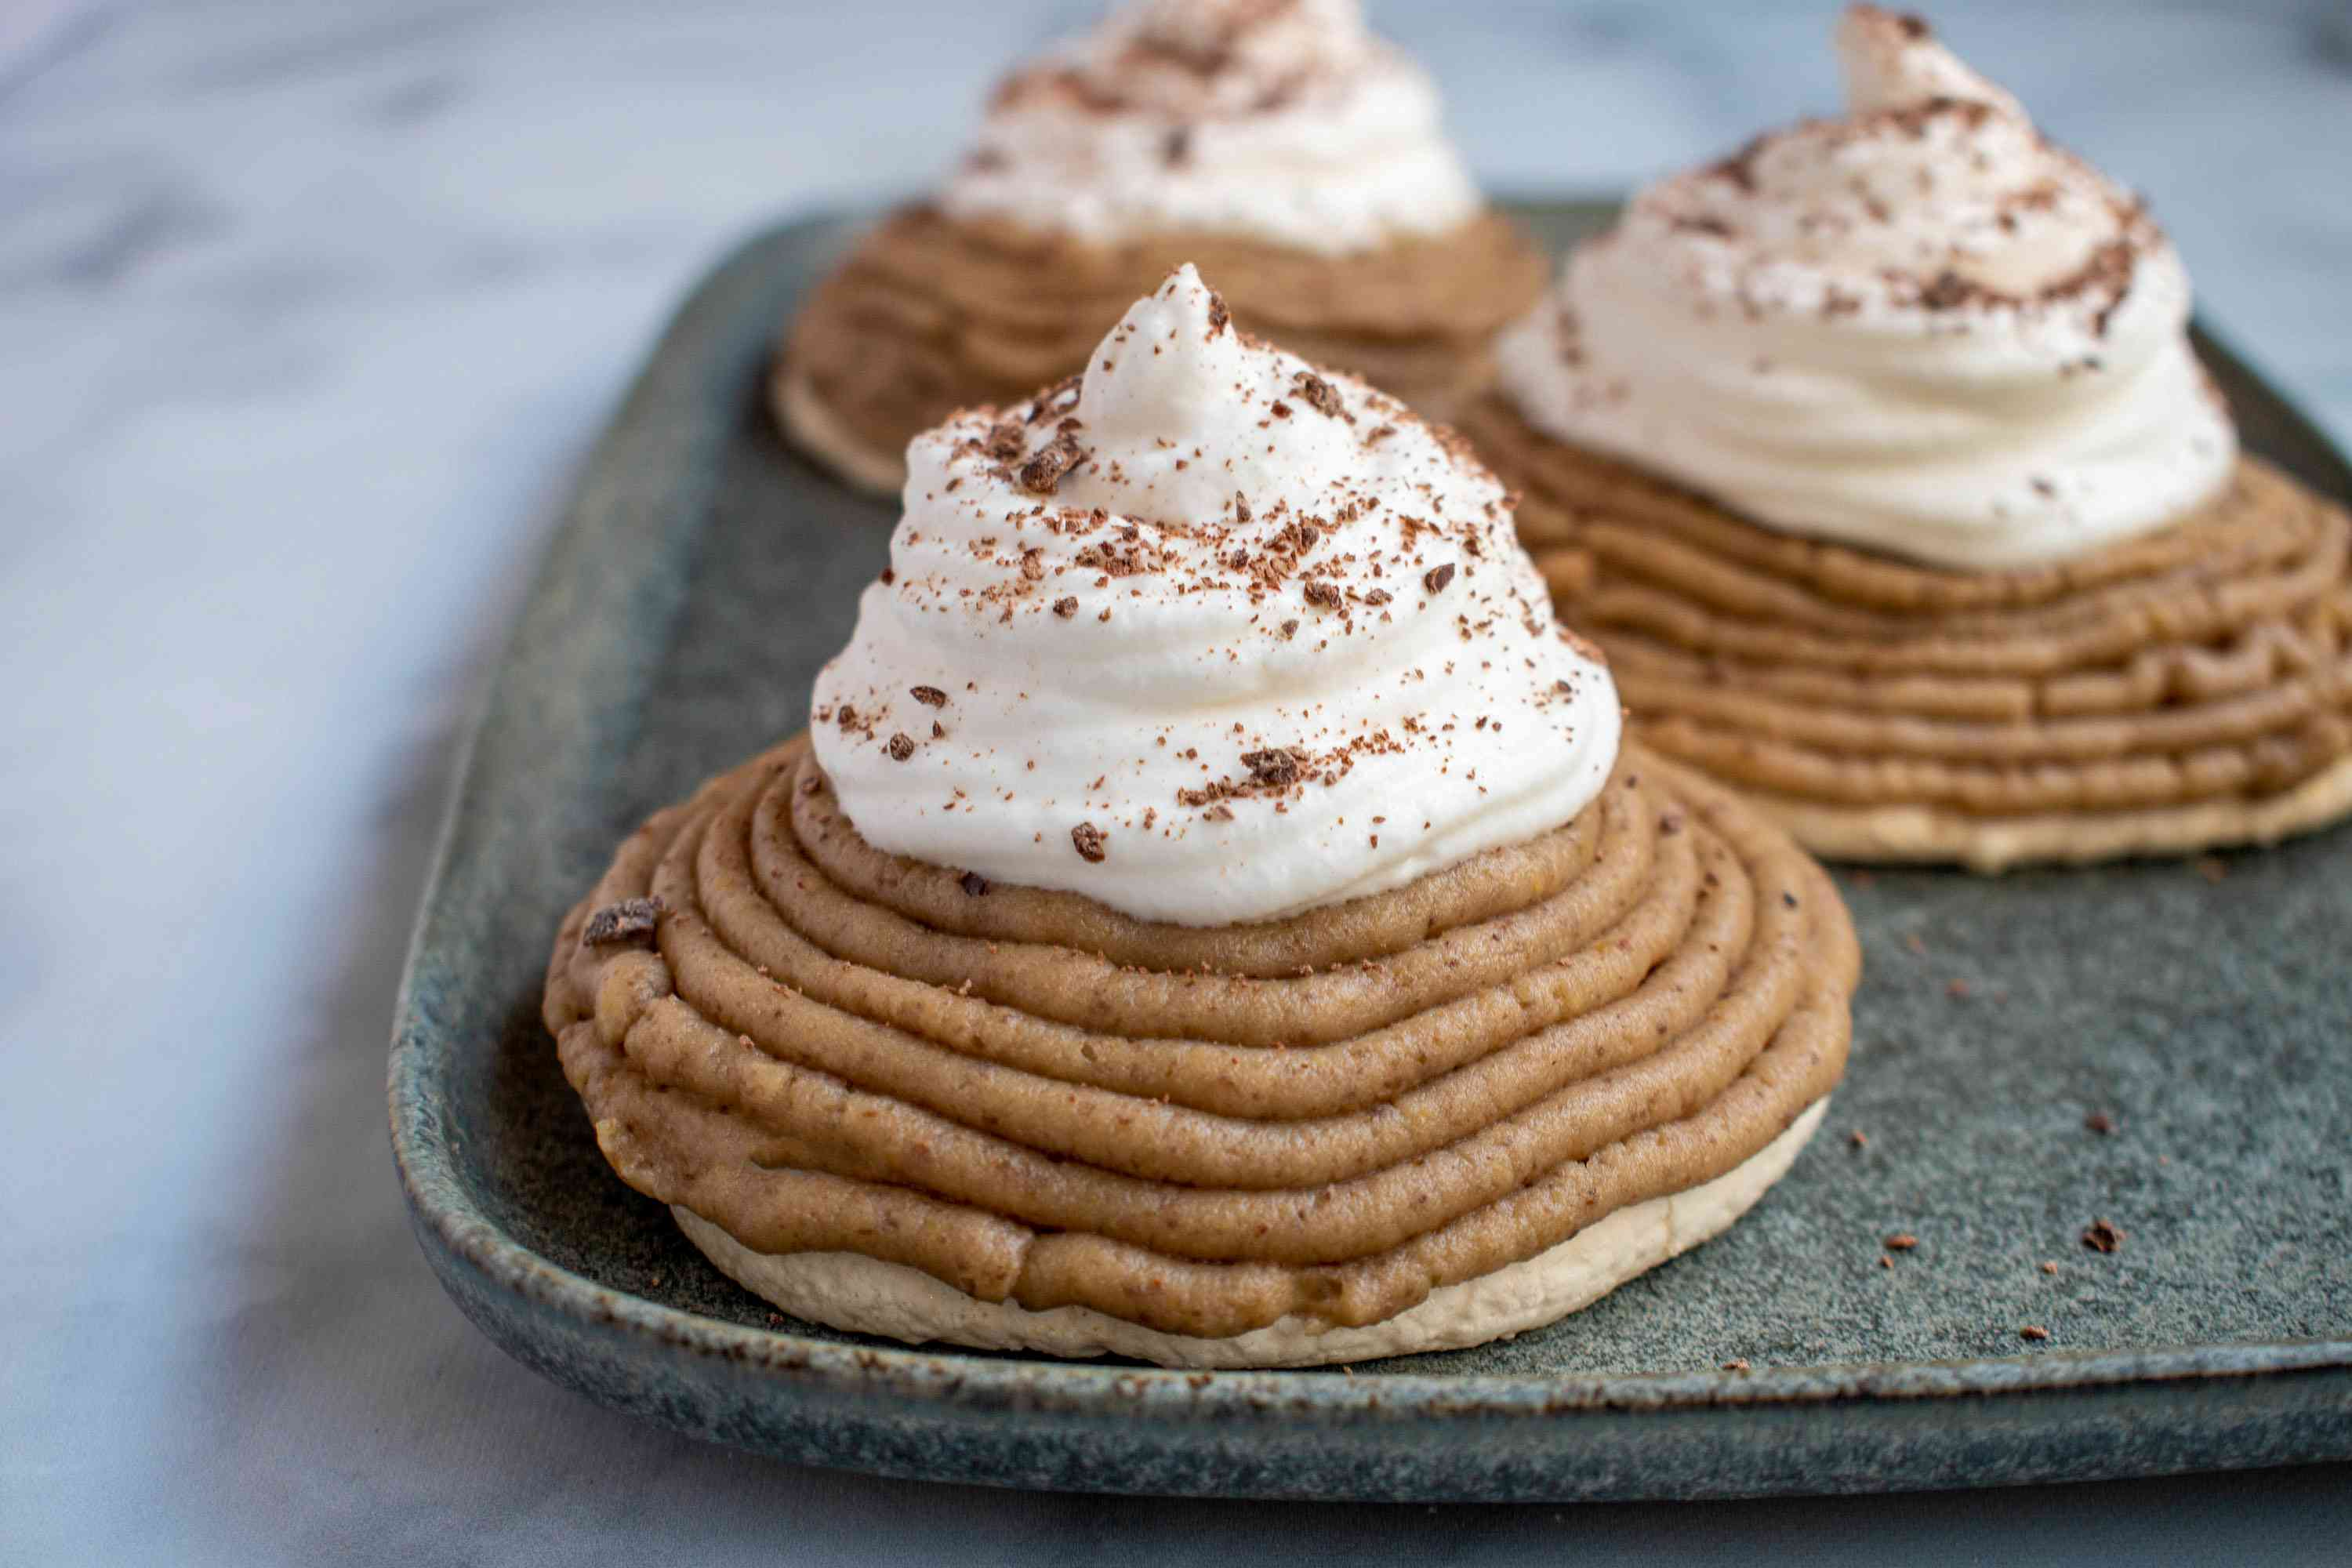 Sprinkle grated chocolate over the whipped cream on top of the chestnut puree